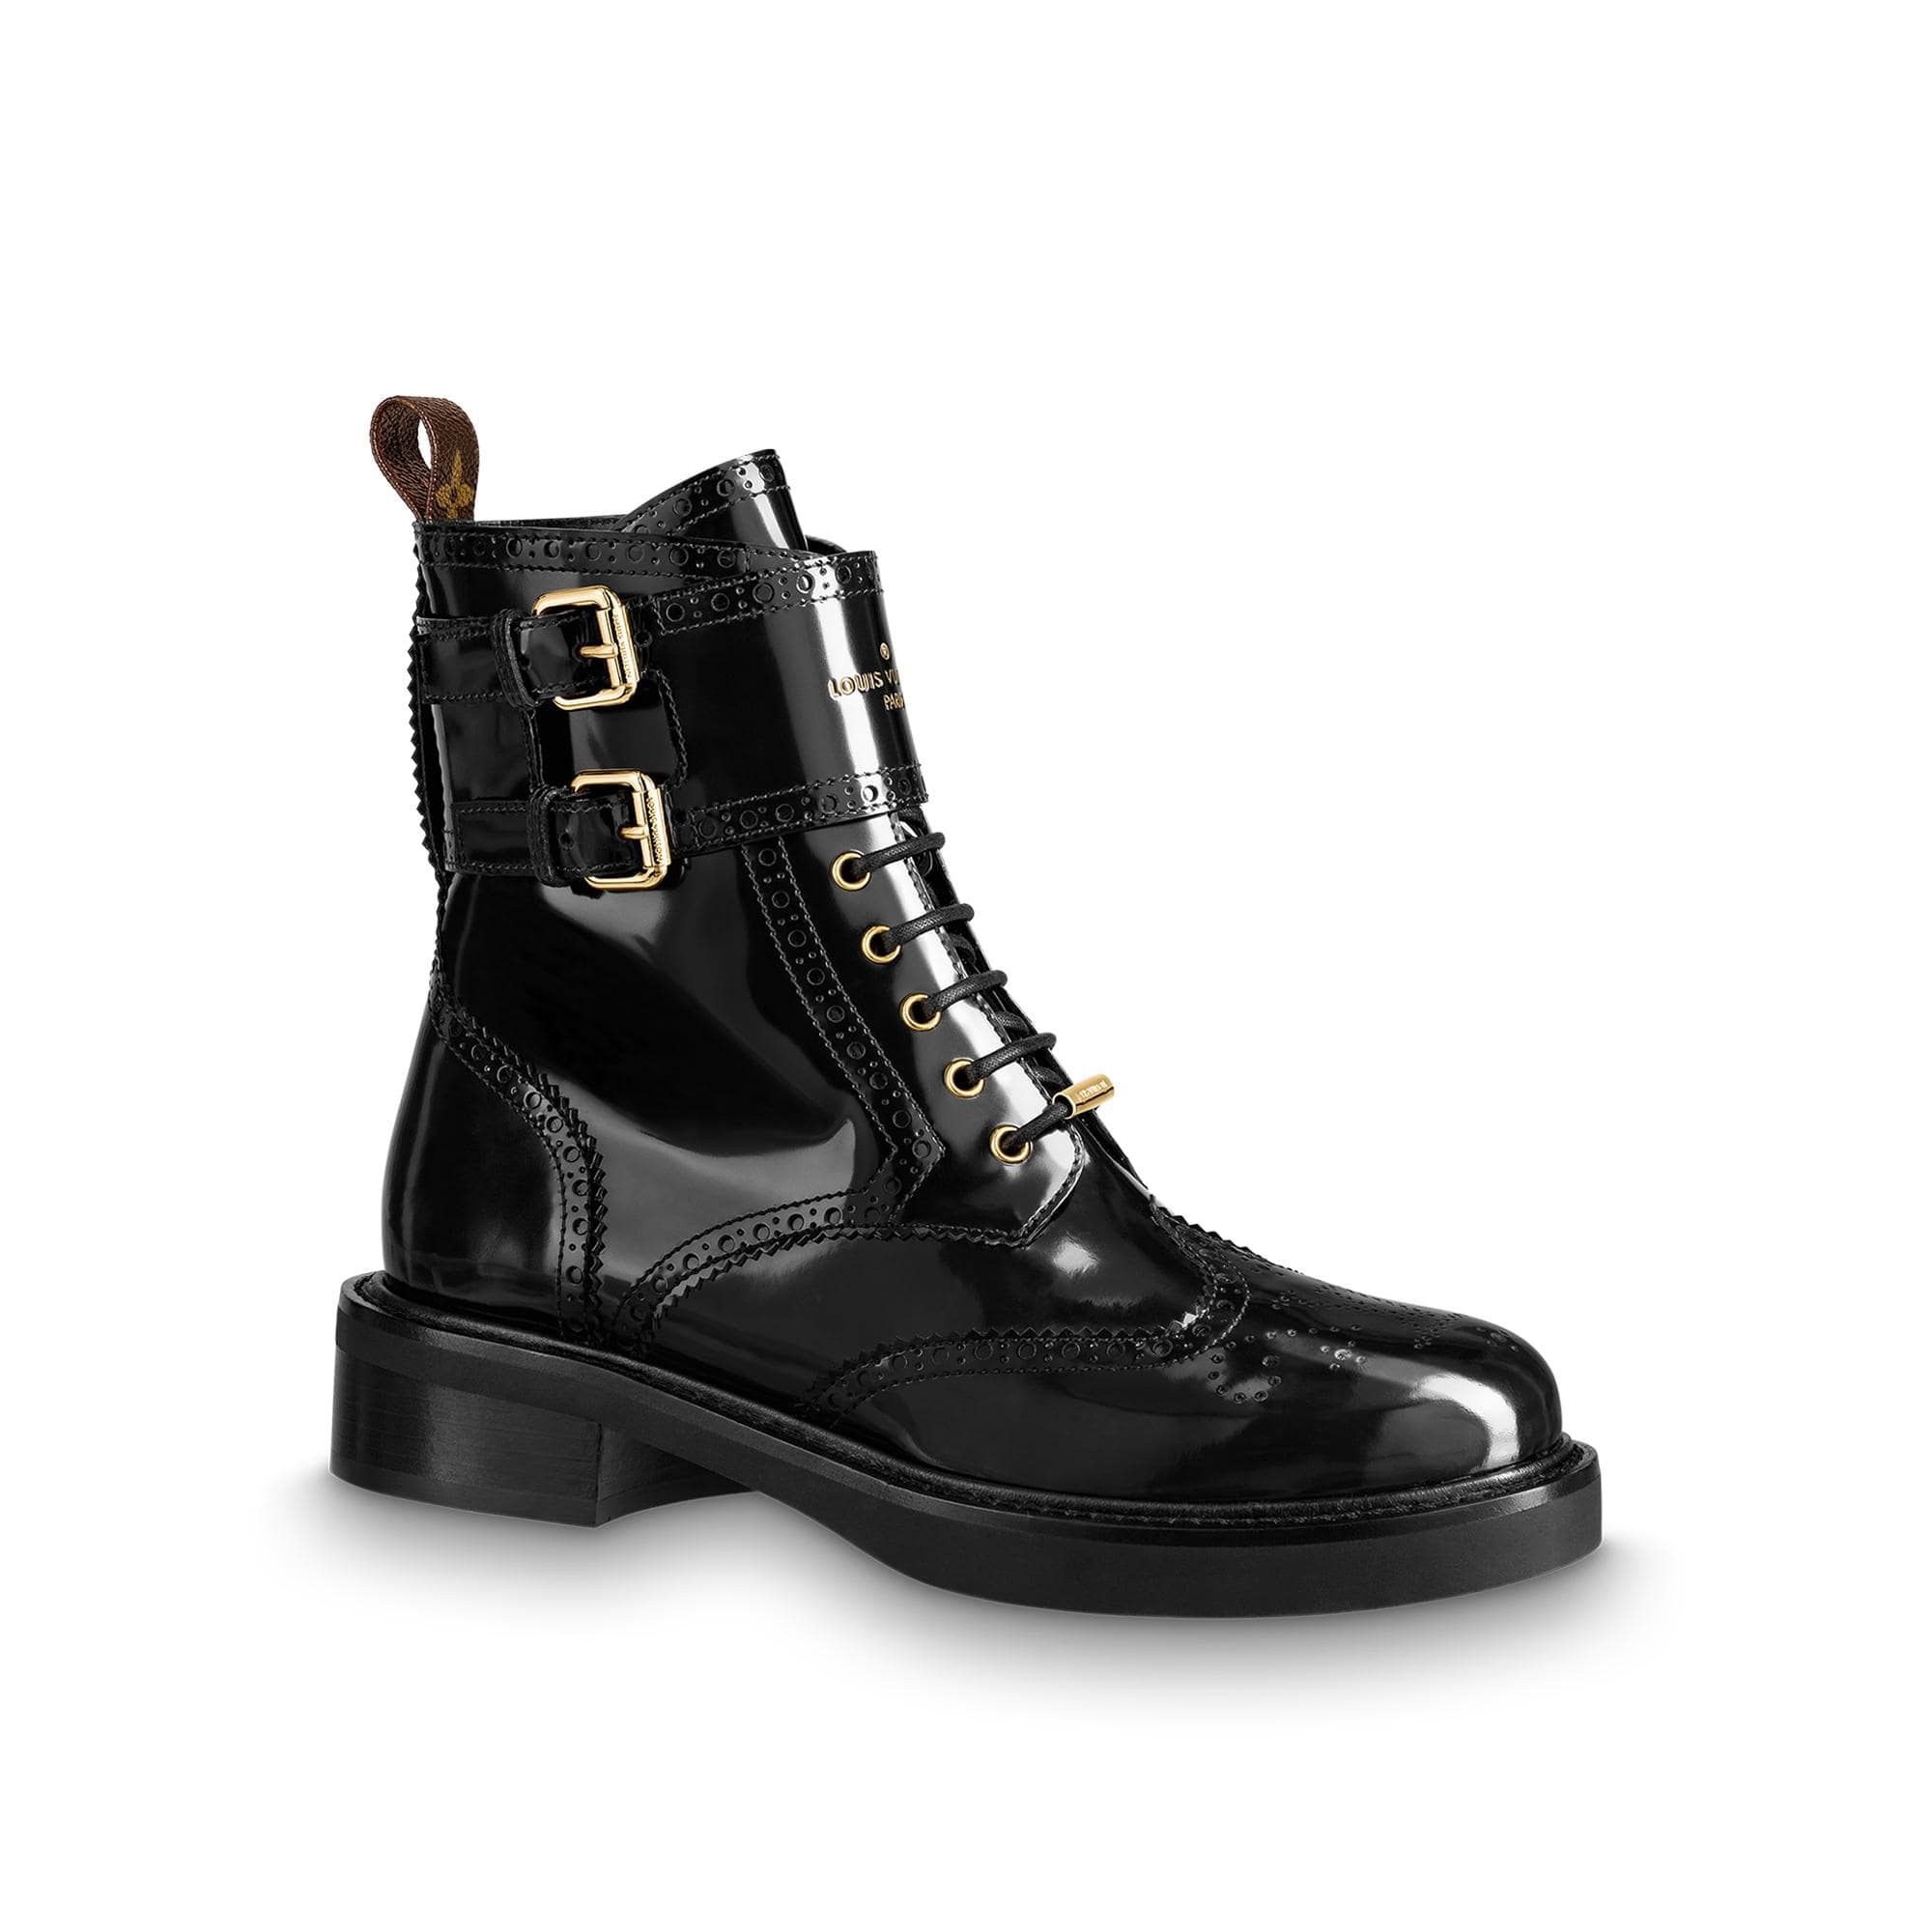 유럽직배송 루이비통 LOUIS VUITTON Midtown Ankle Boots 1A5NU1